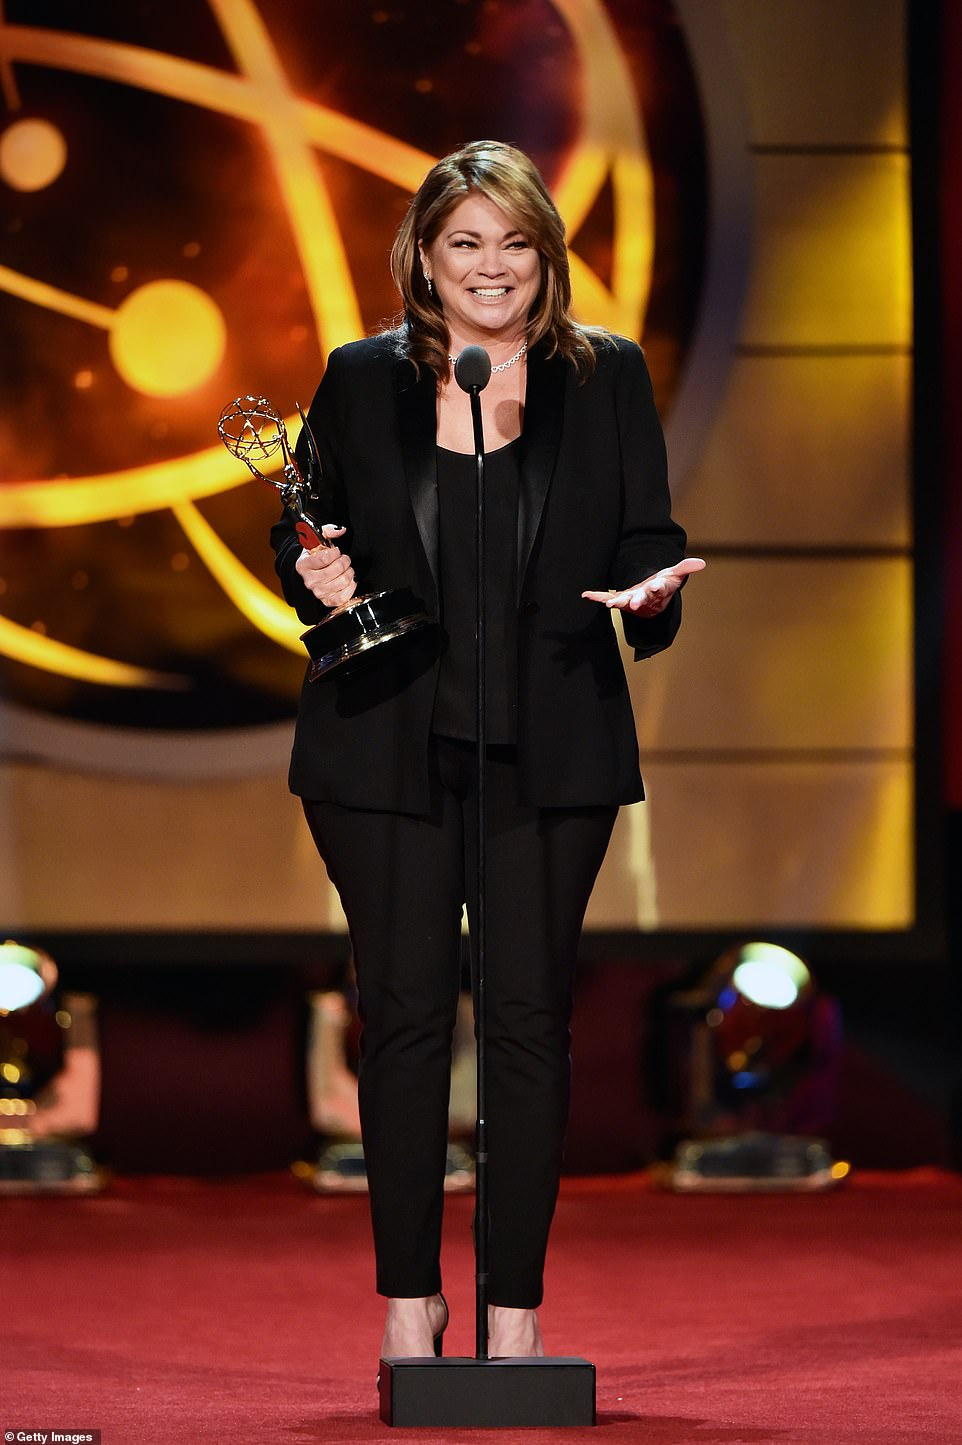 A winning recipe! Valerie Bertinelli show, Valerie's Home Cooking, was the recipient of Outstanding Culinary Host and Outstanding Culinary Program